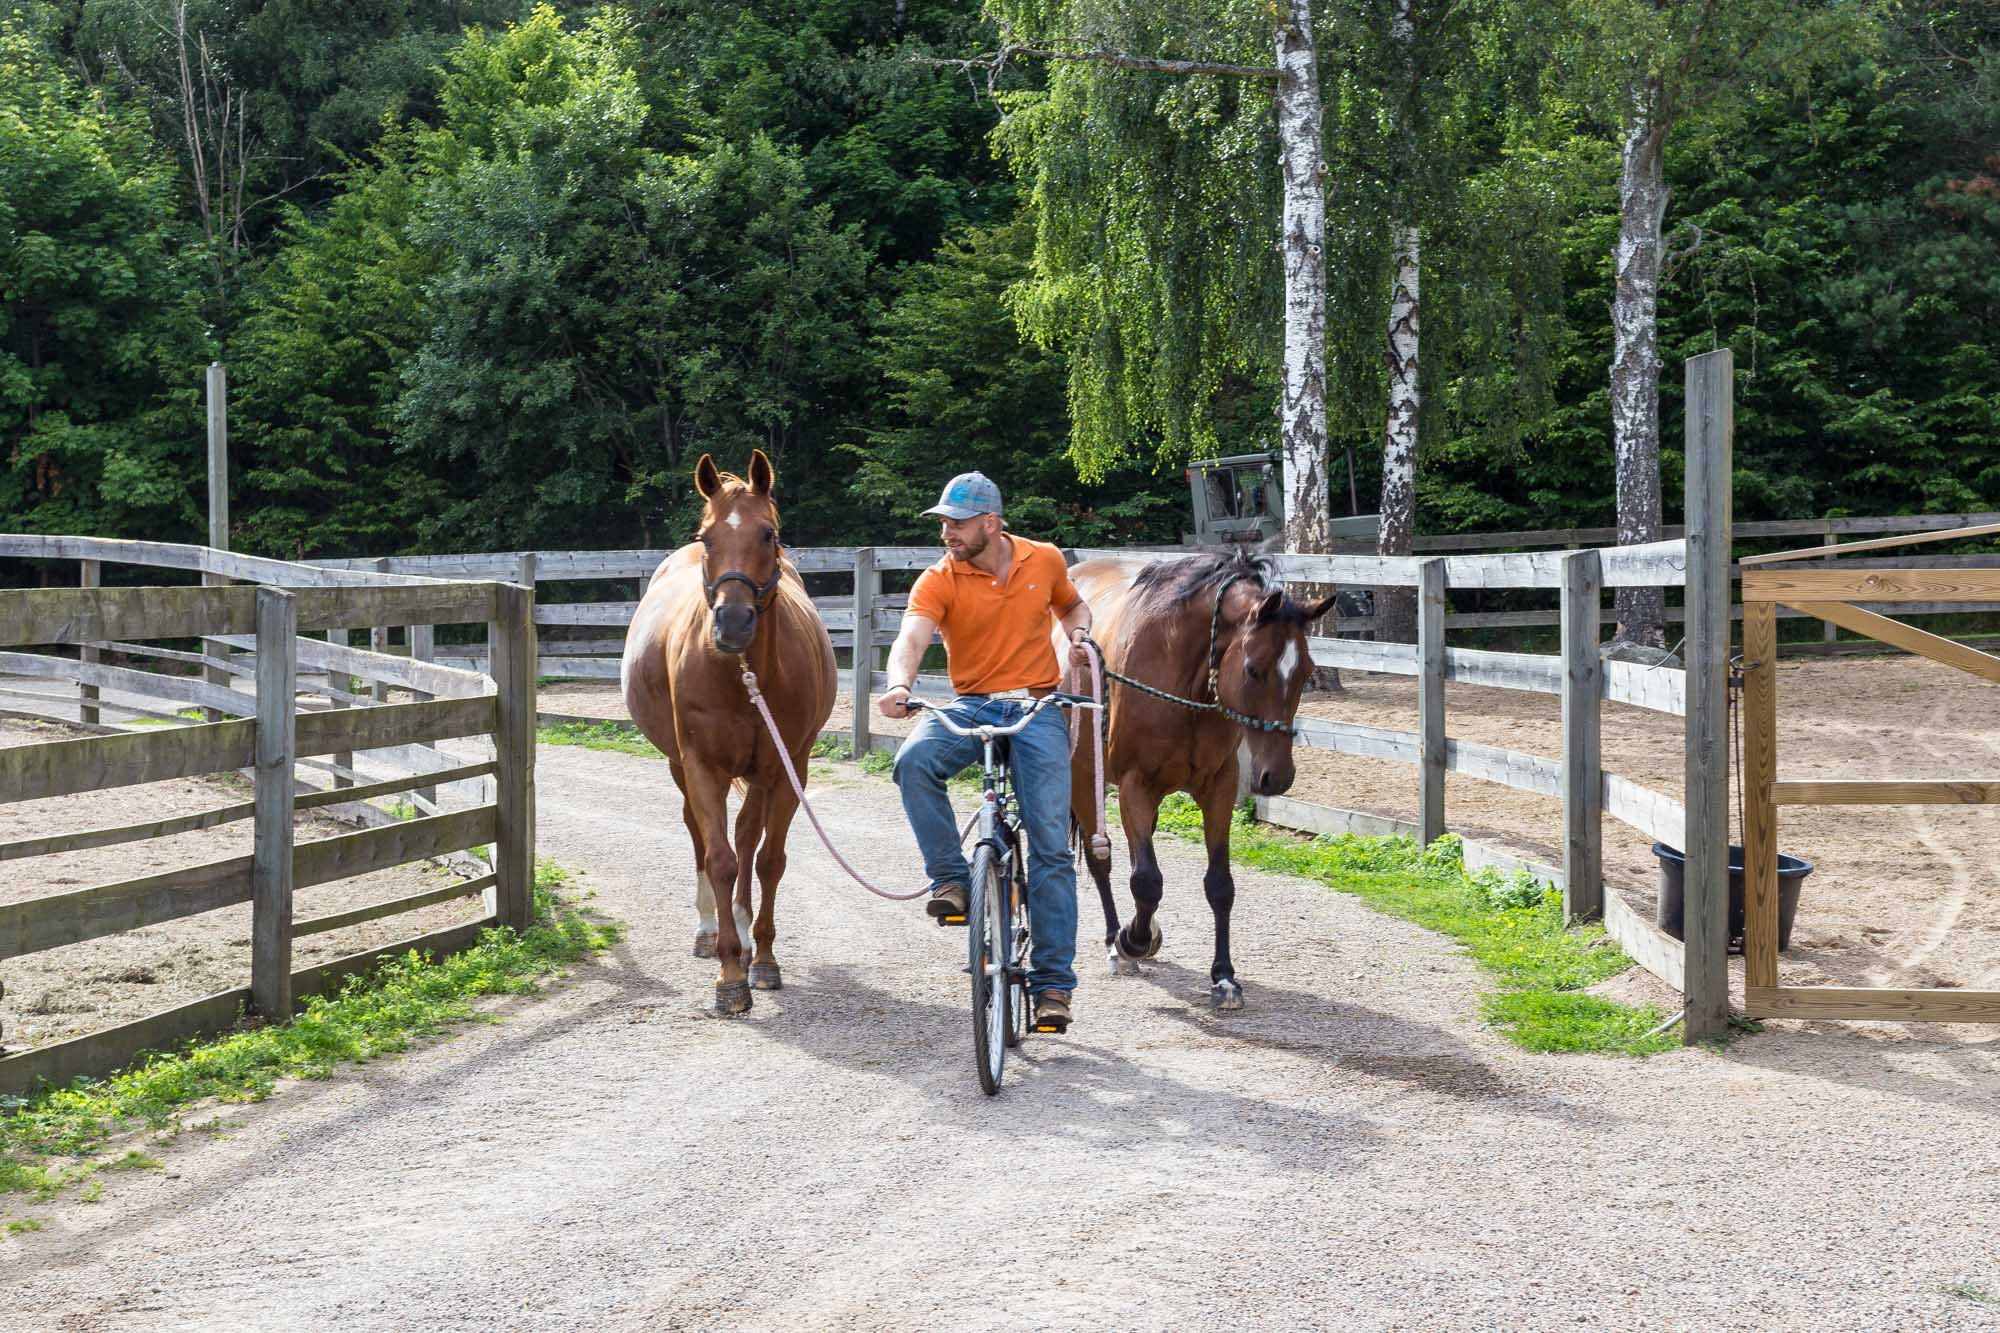 Anton is bringing the horses for the girls. He is one of the best westernstyle riding instructor in Sweden.